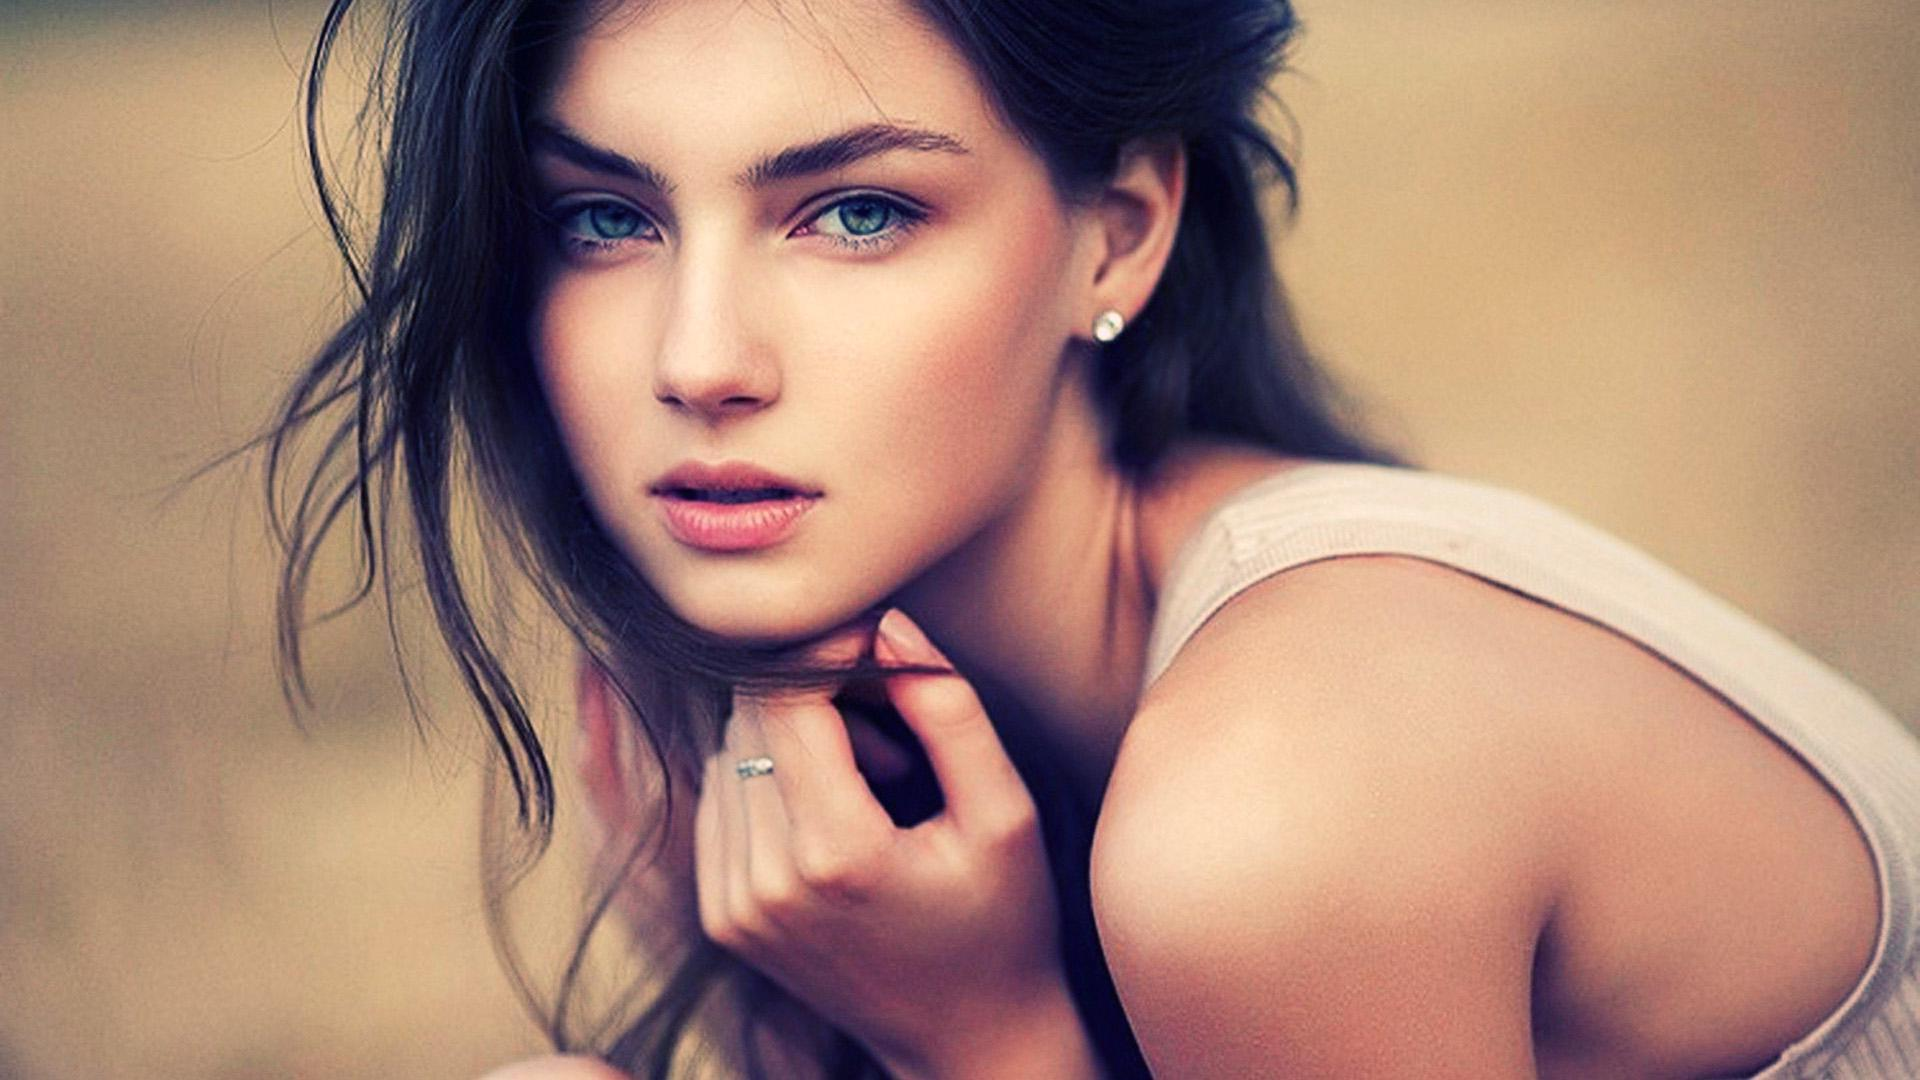 Hot Girls Wallpapers For Android Apk Download